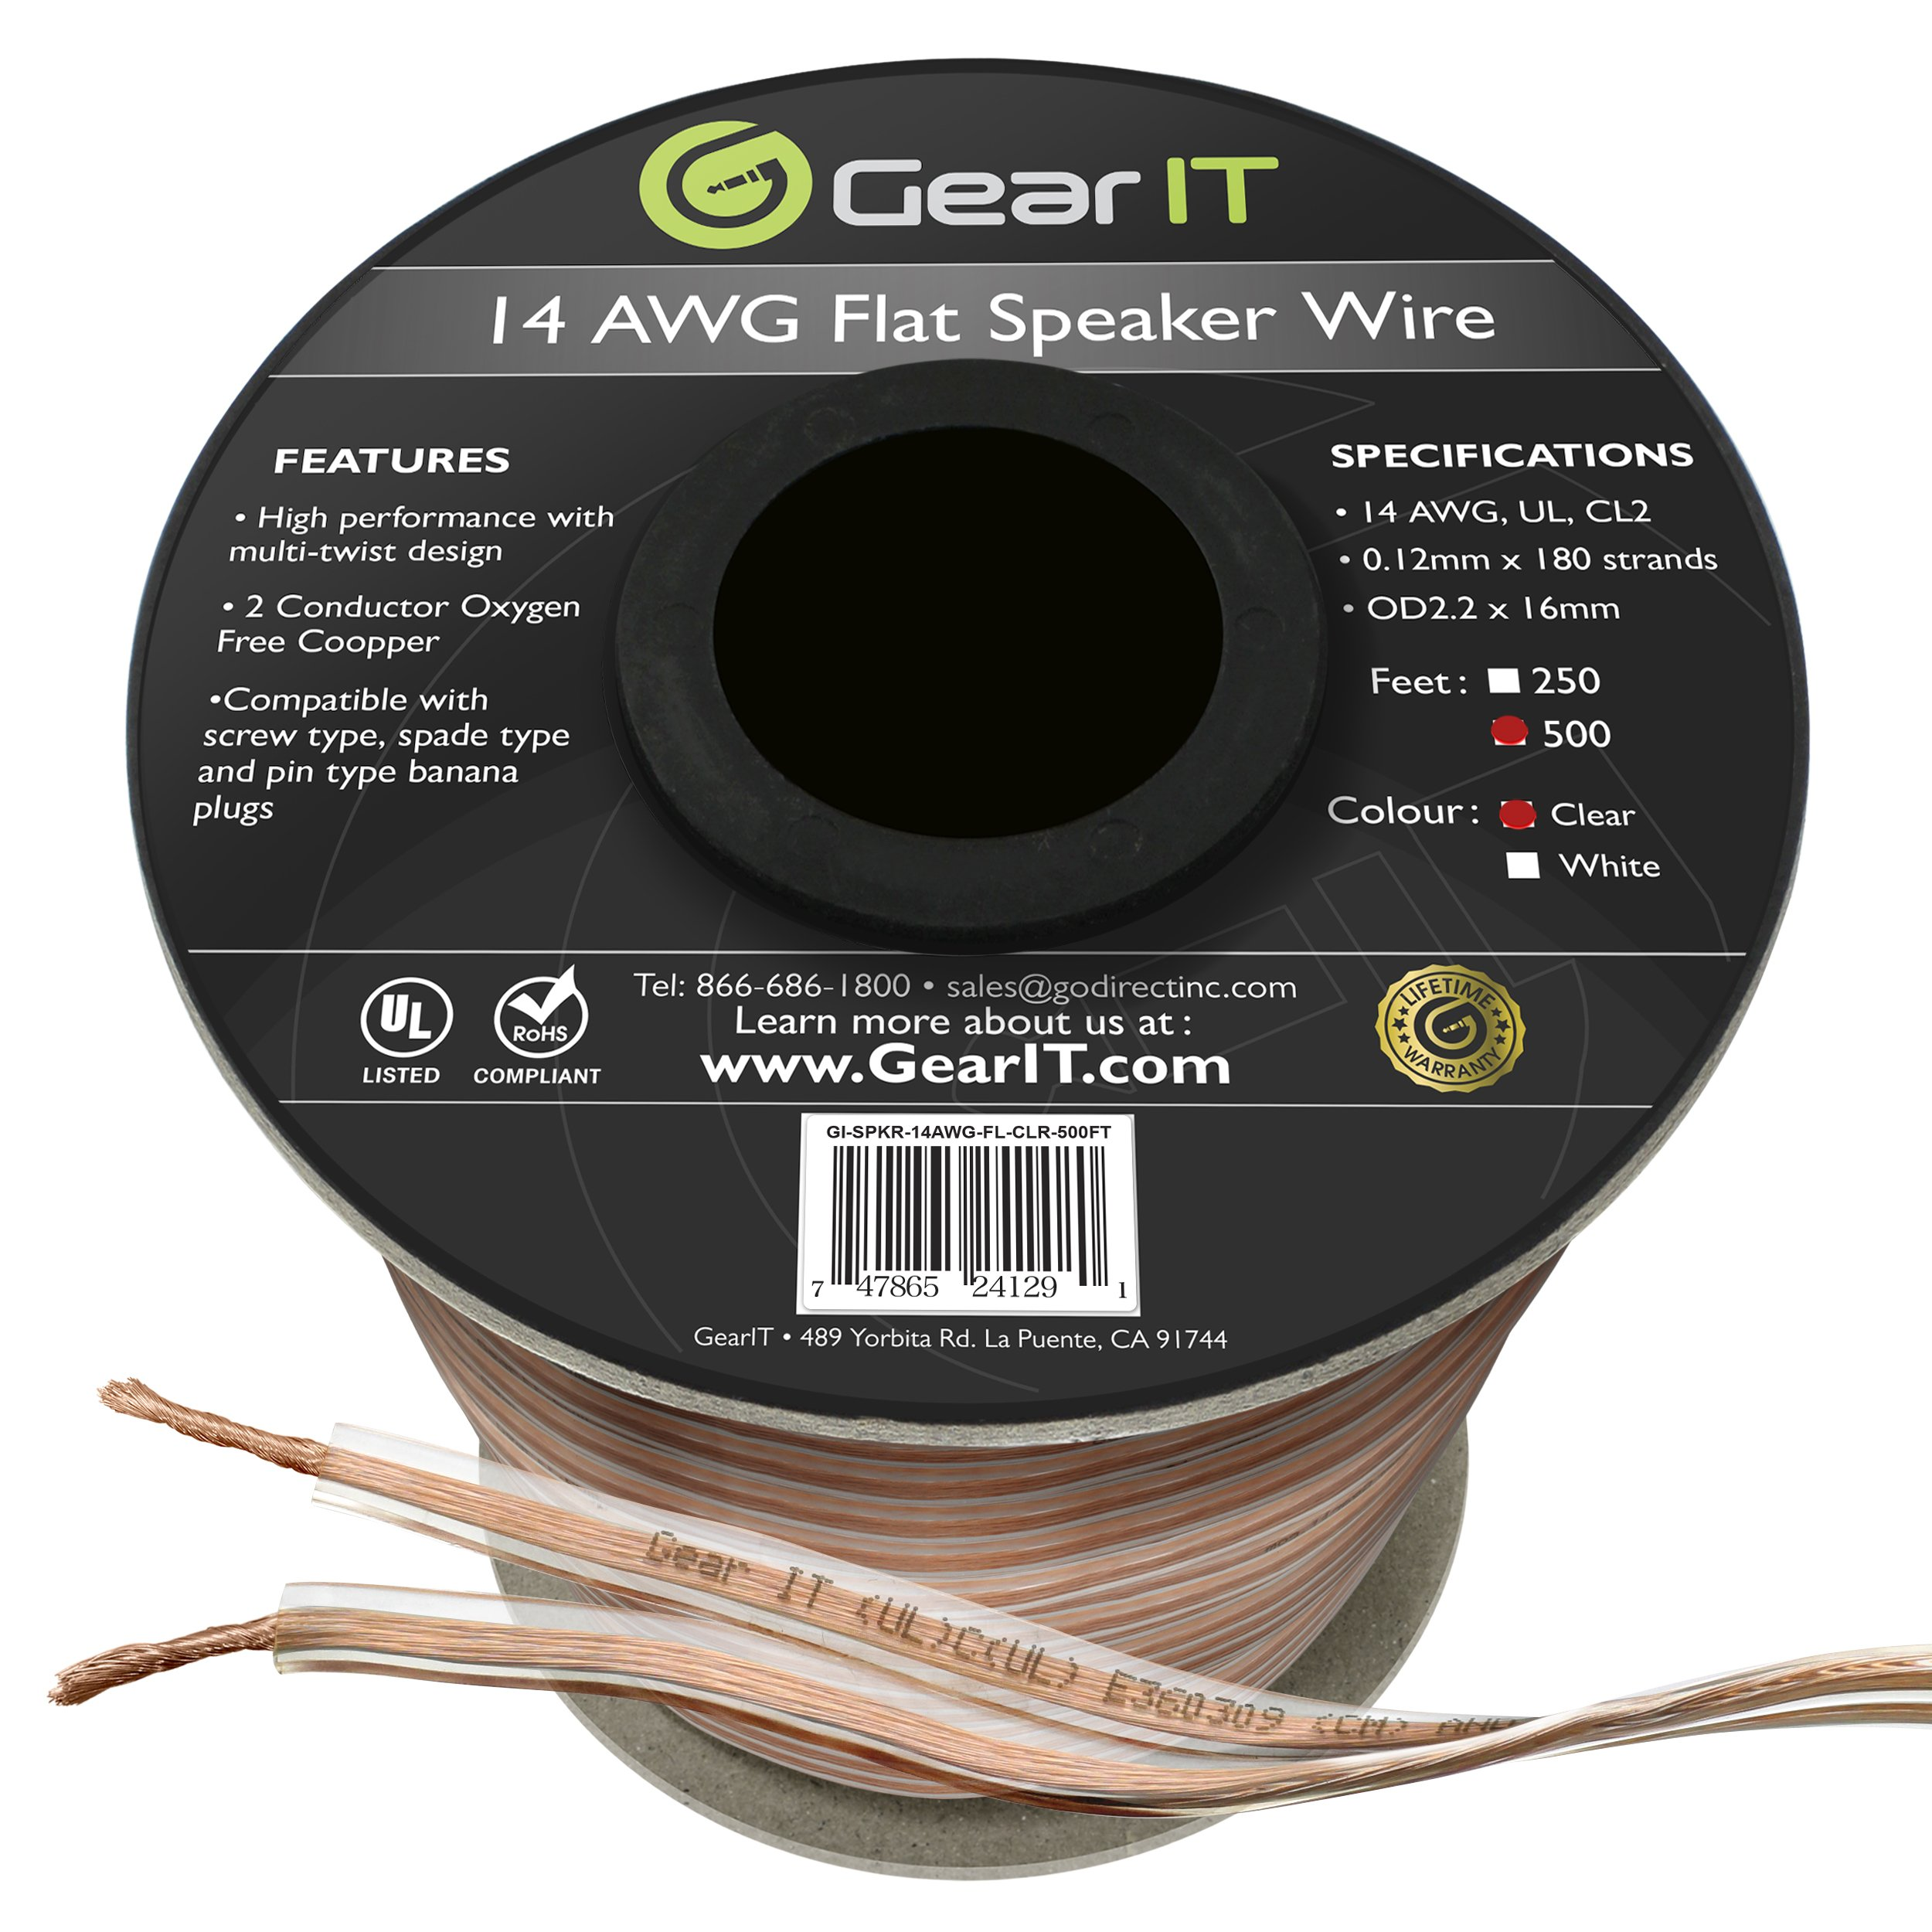 GearIT Elite Series 14AWG Flat Speaker Wire (500 Feet / 152 Meters) - Oxygen Free Copper (OFC) CL2 Rated In-Wall Installation for Home Theater, Car Audio, and Outdoor Use, Clear